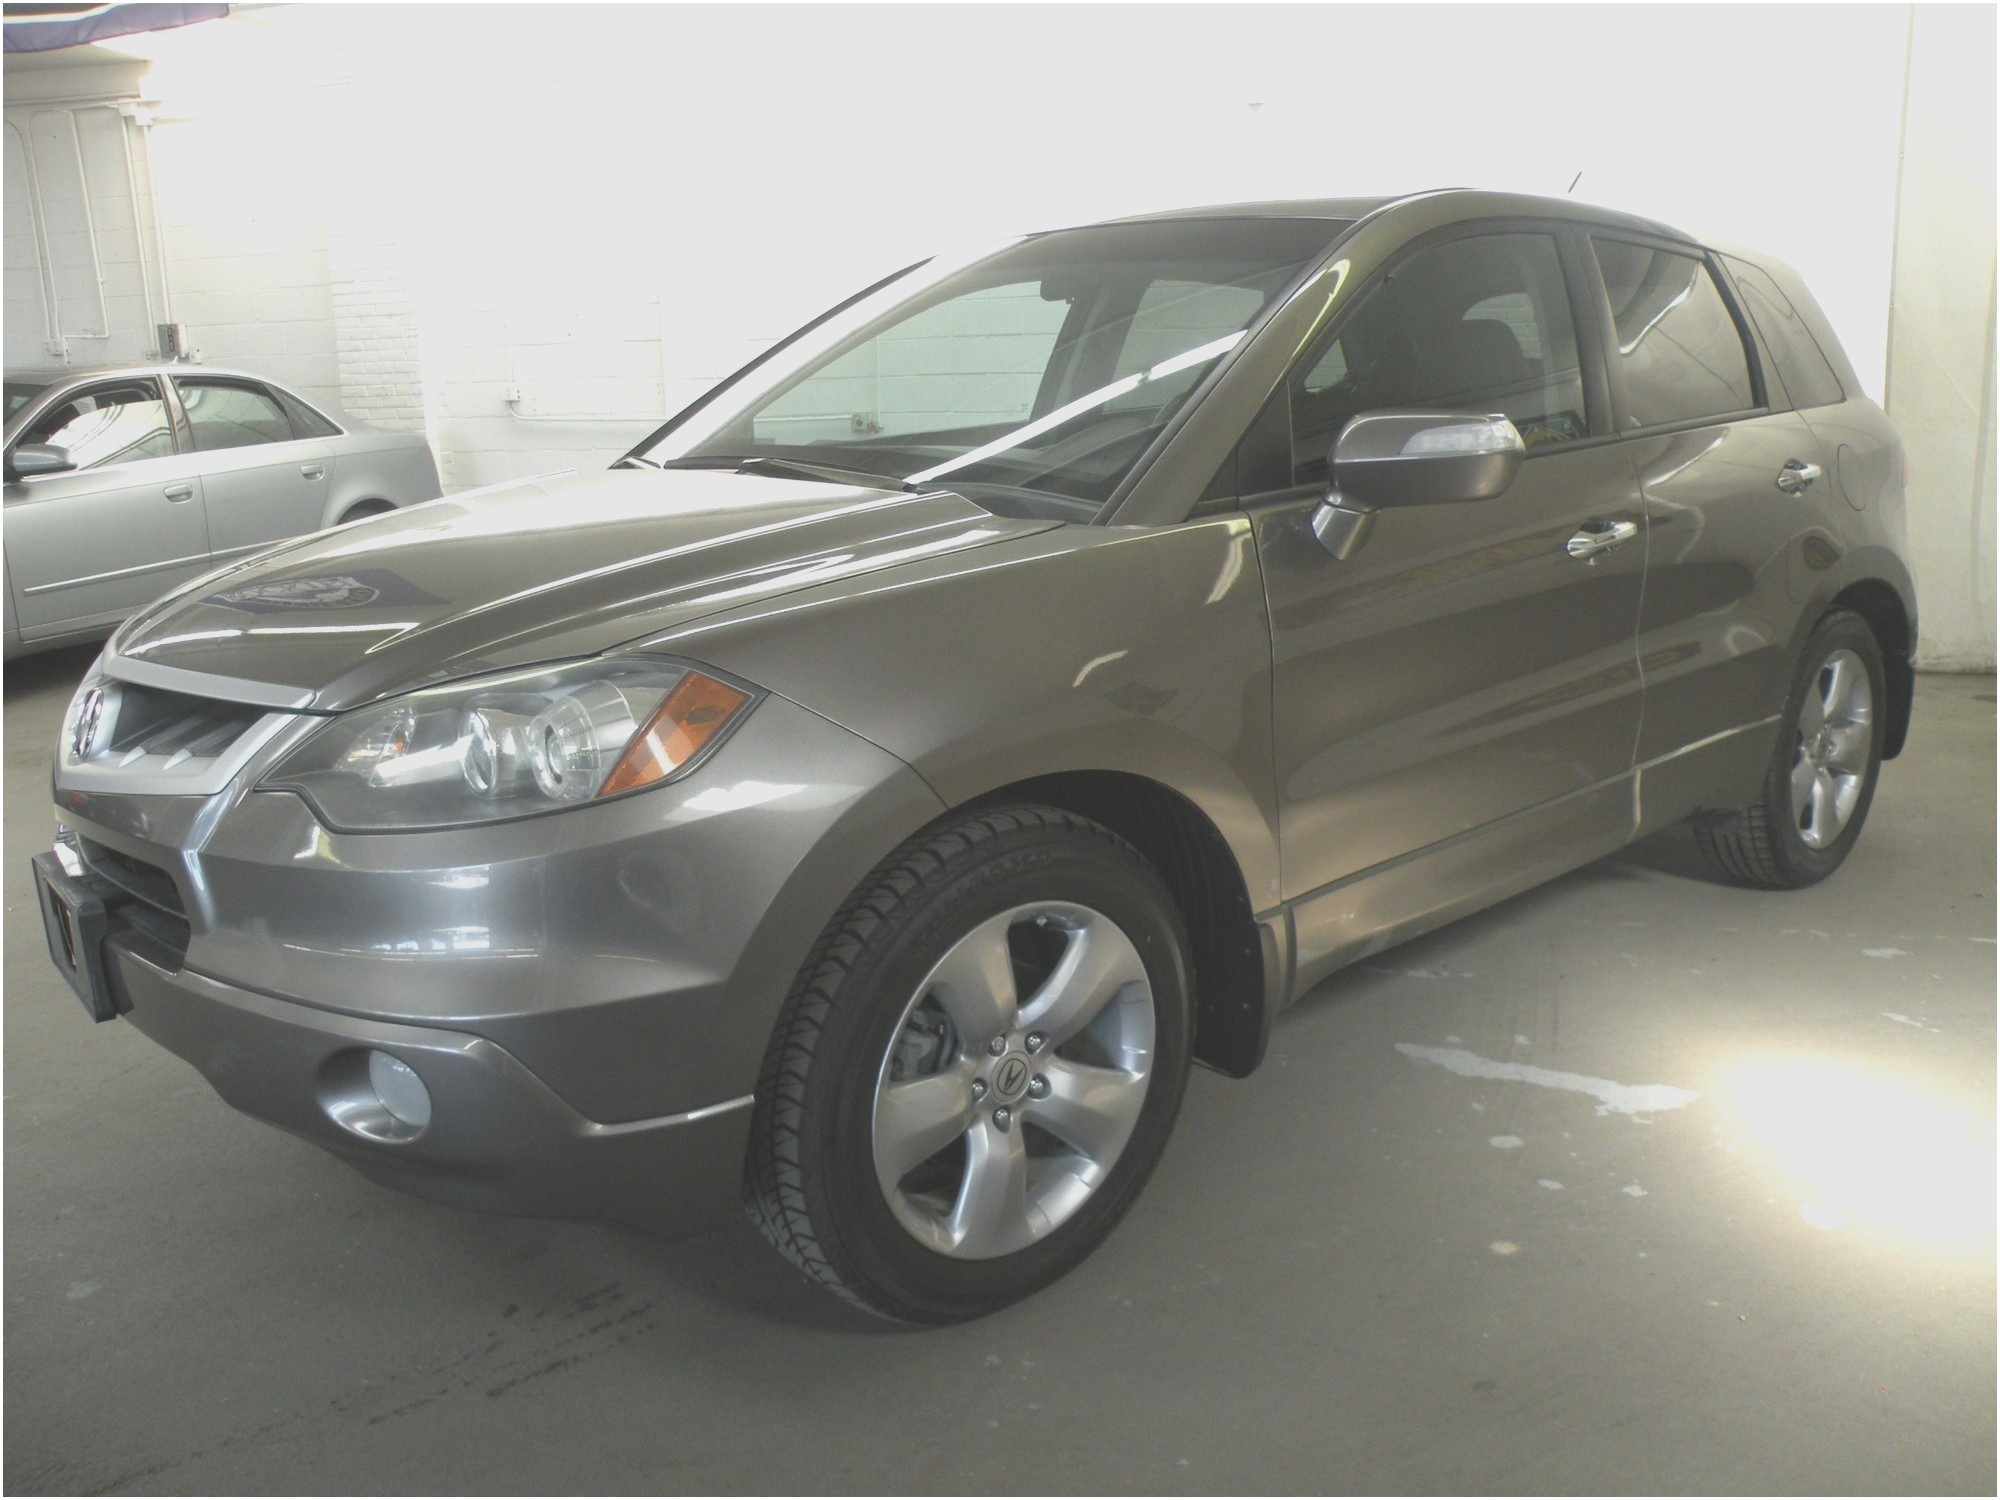 Awesome Acura Zds Acura Mdx Fresh 2008 Acura Mdx Unique Bmw X3 3 0d 2008